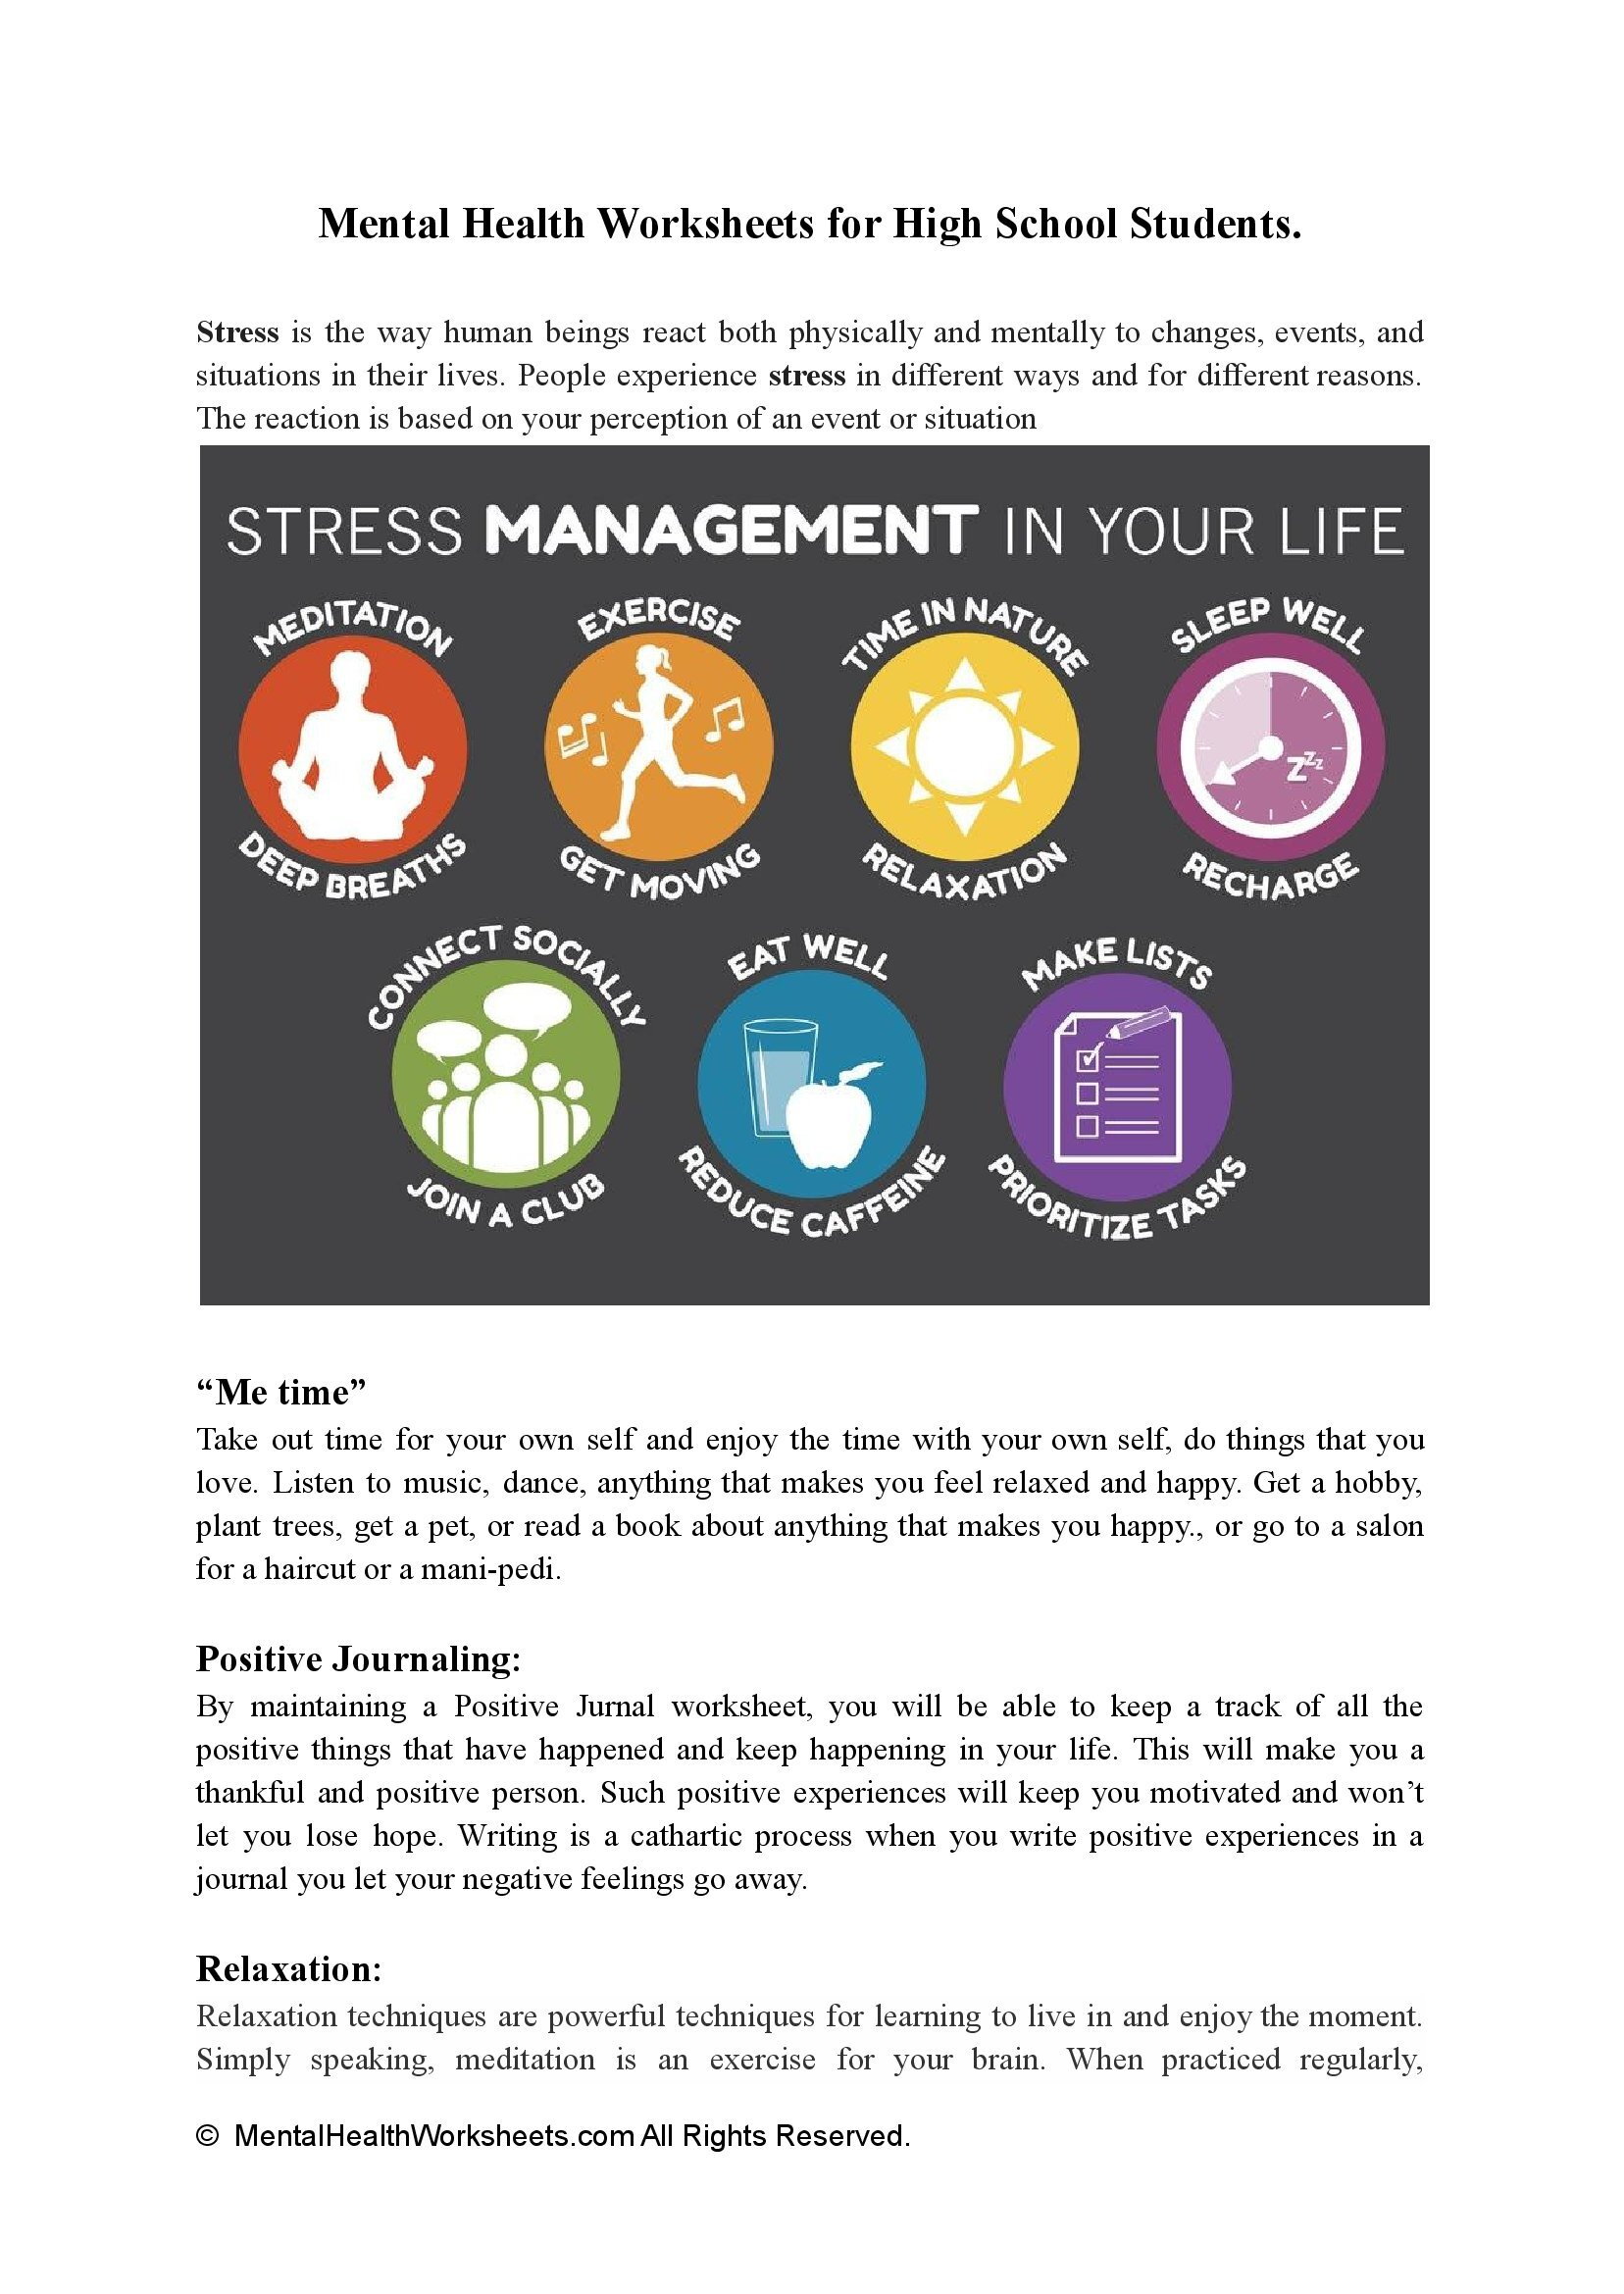 Mental Health Worksheets for High School Students